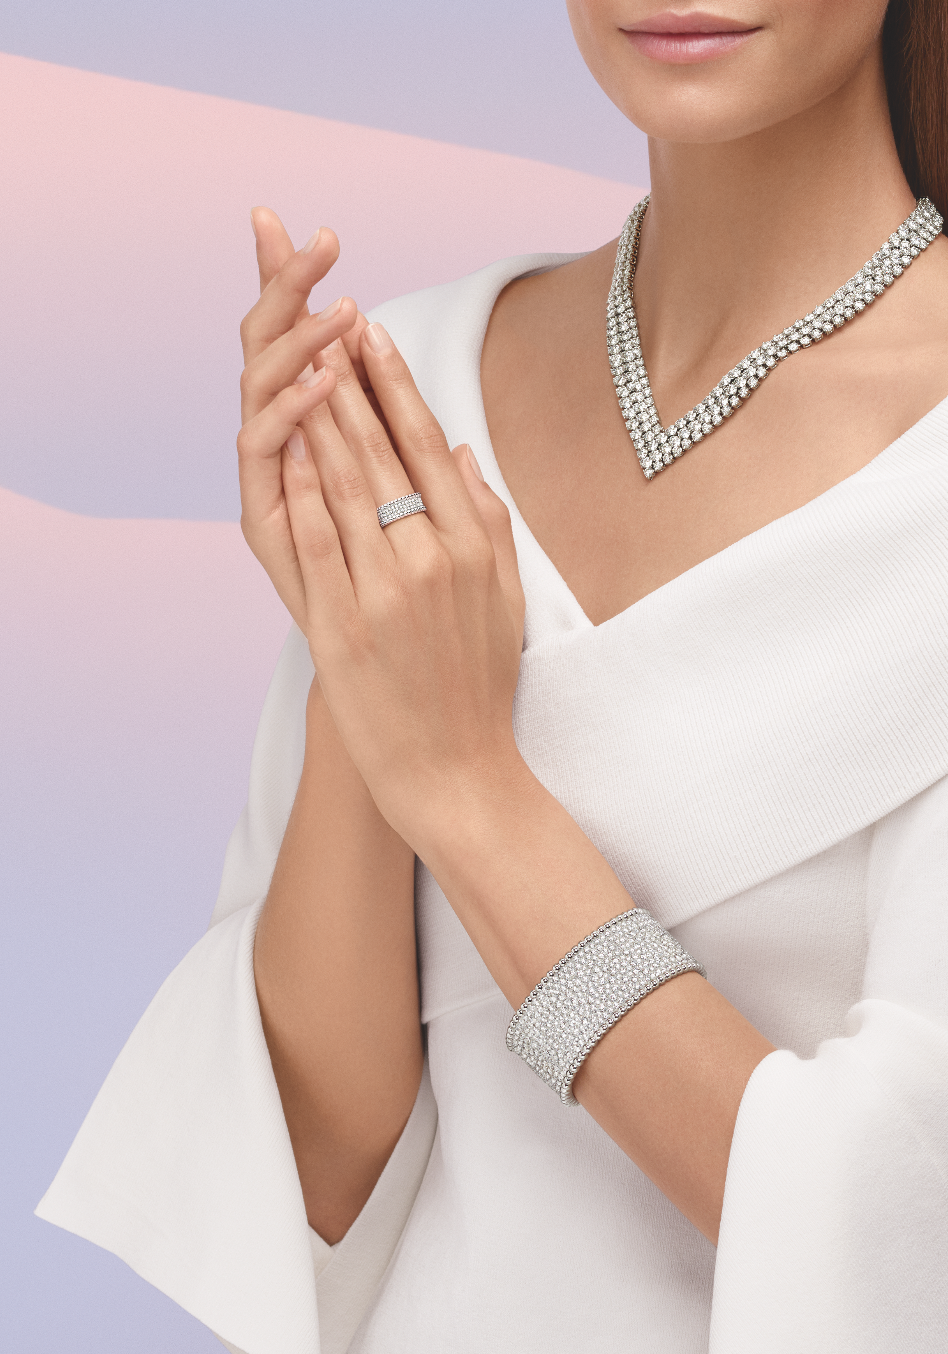 Van Cleef & Arpels' Perlée diamonds collection will take you through the festive season with breeze (фото 1)